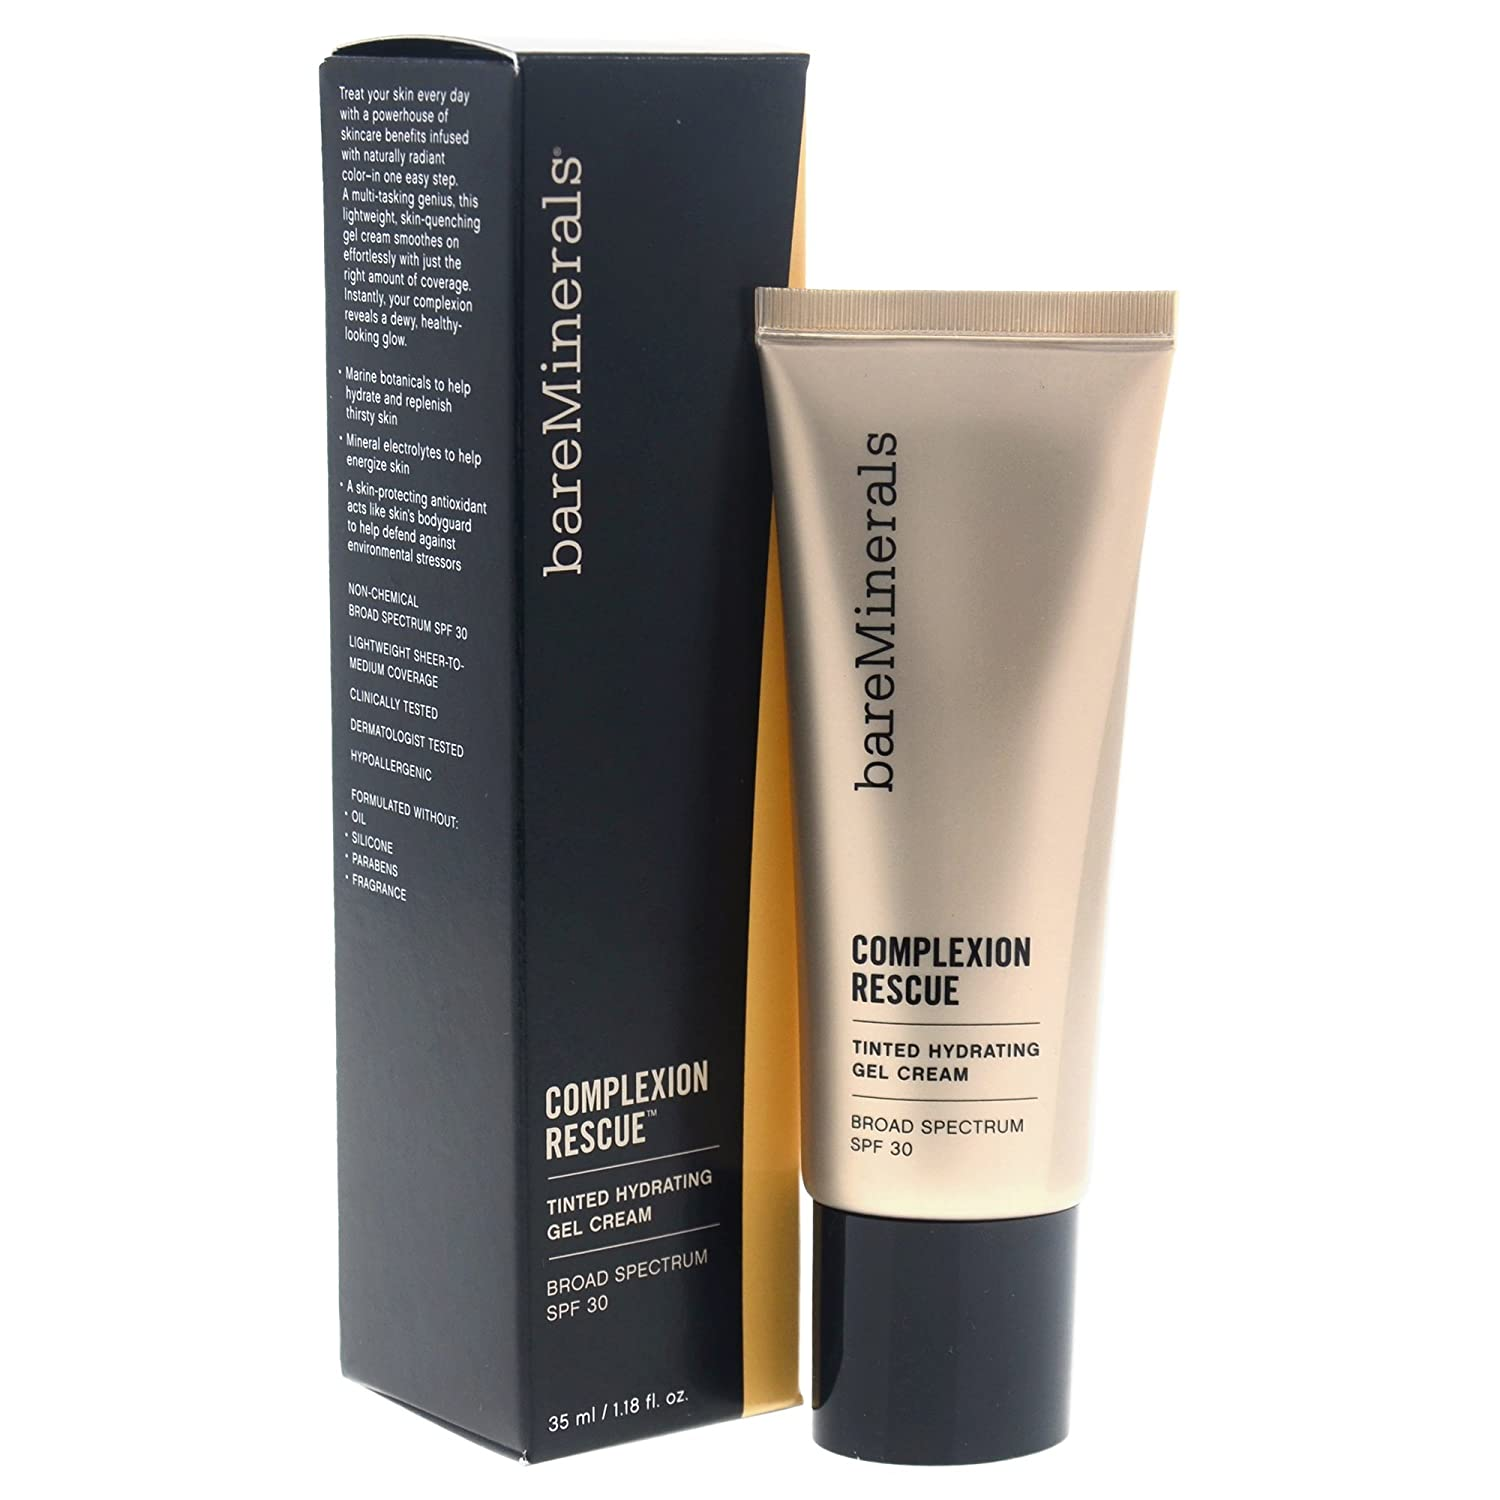 Bareminerals Complexion Rescue Tinted Hydrating Gel Cream SPF 30, Buttercream, 1.18 Ounce 098132399963